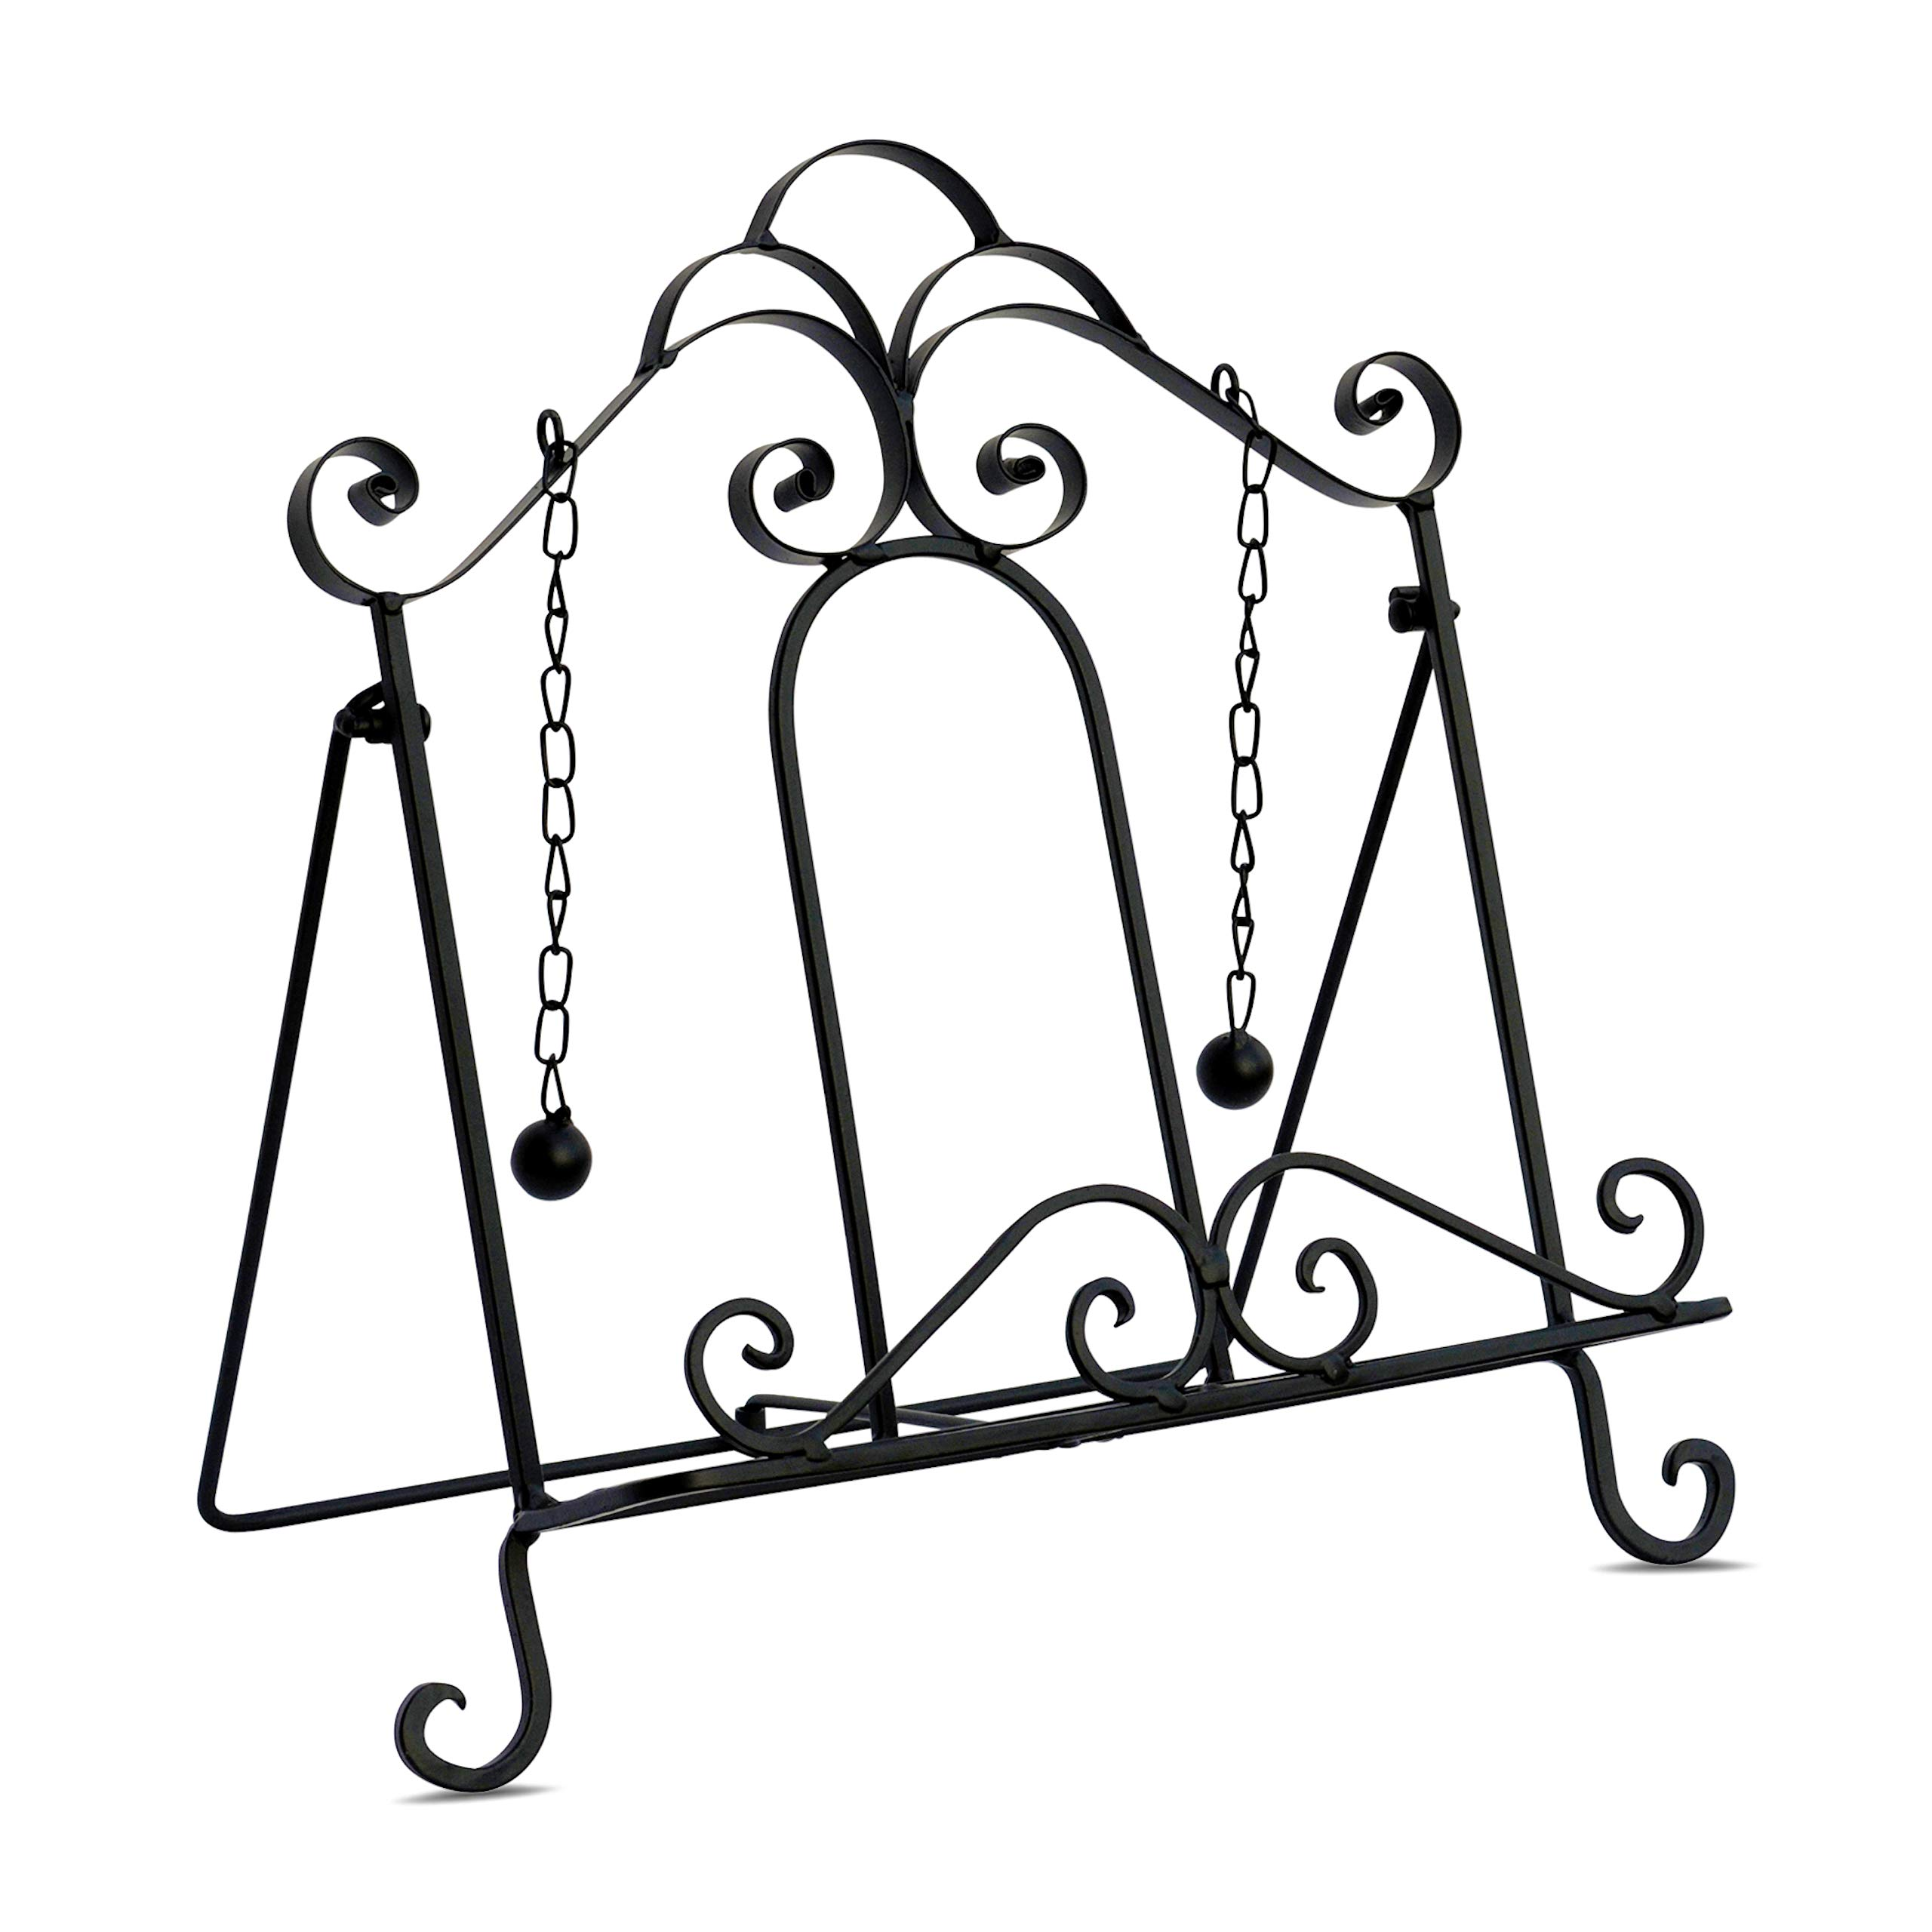 Gastro Chic Cook Book Stand, Artisinal Design, Weighted Drop Chain Page Holders, Iconic Scroll Work Details, Easel Back, 12 1/2 Inches Tall by WHW Whole House Worlds